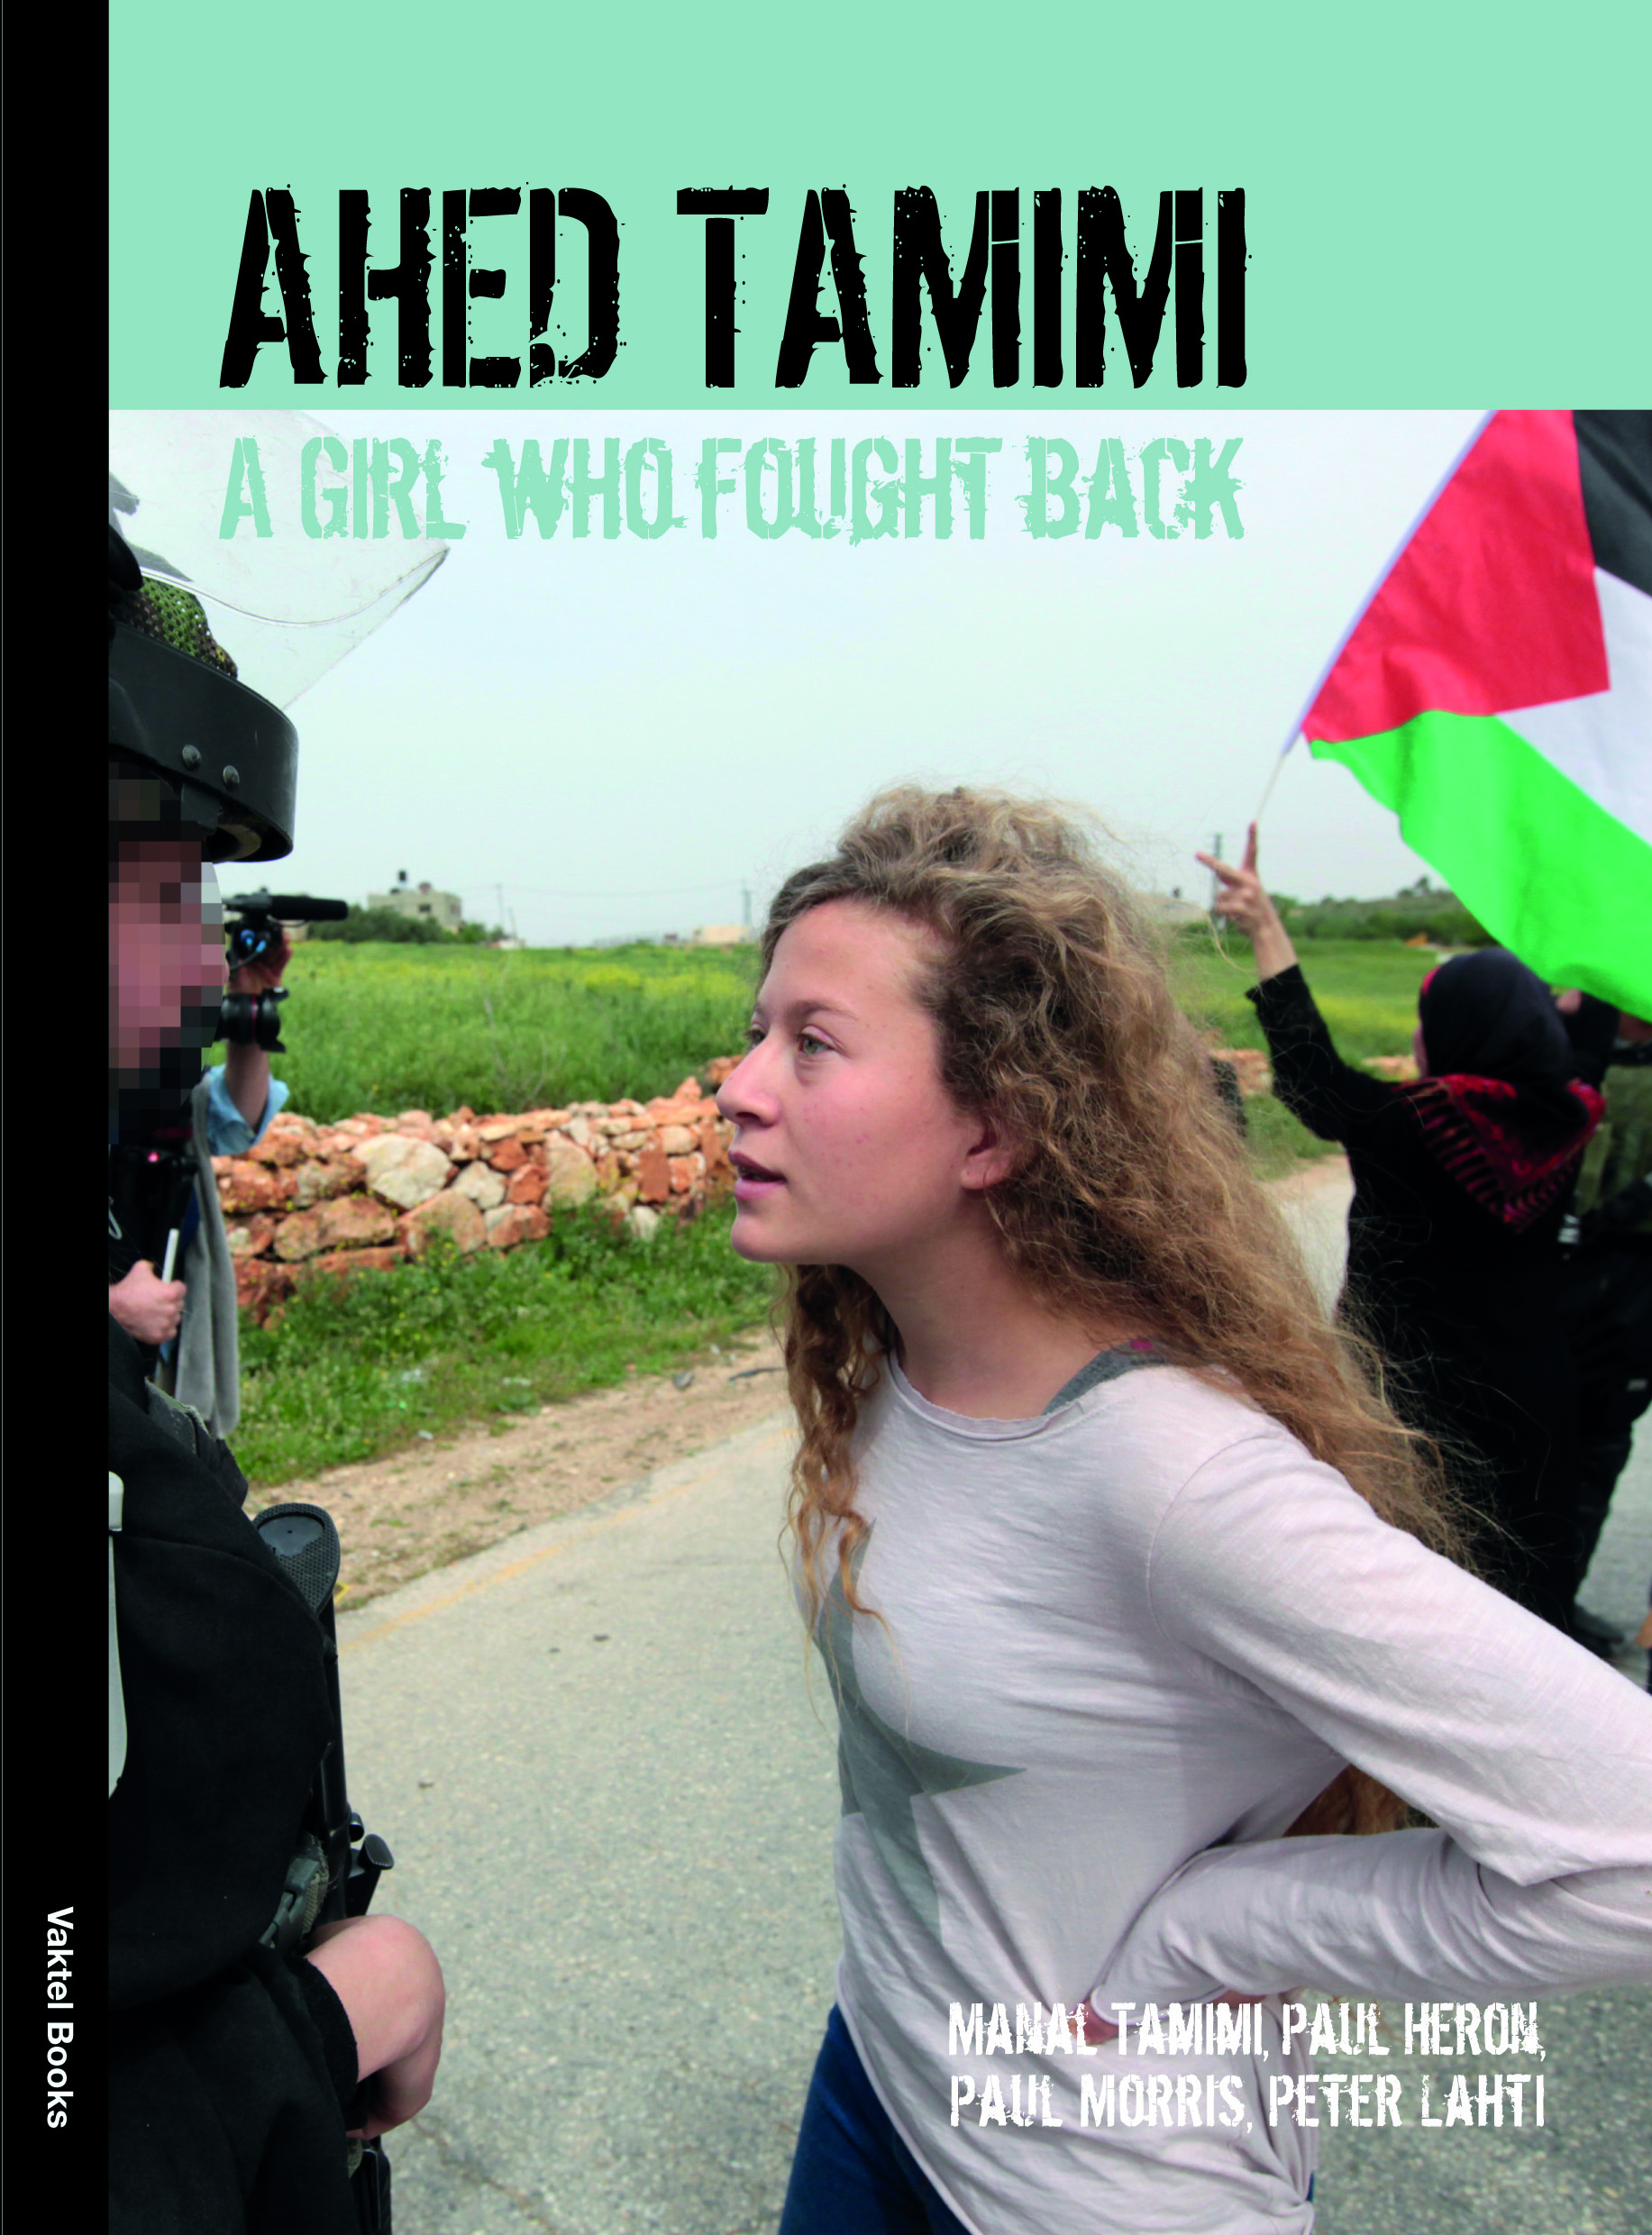 Published now: The book Ahed Tamimi – A Girl who Fought Back